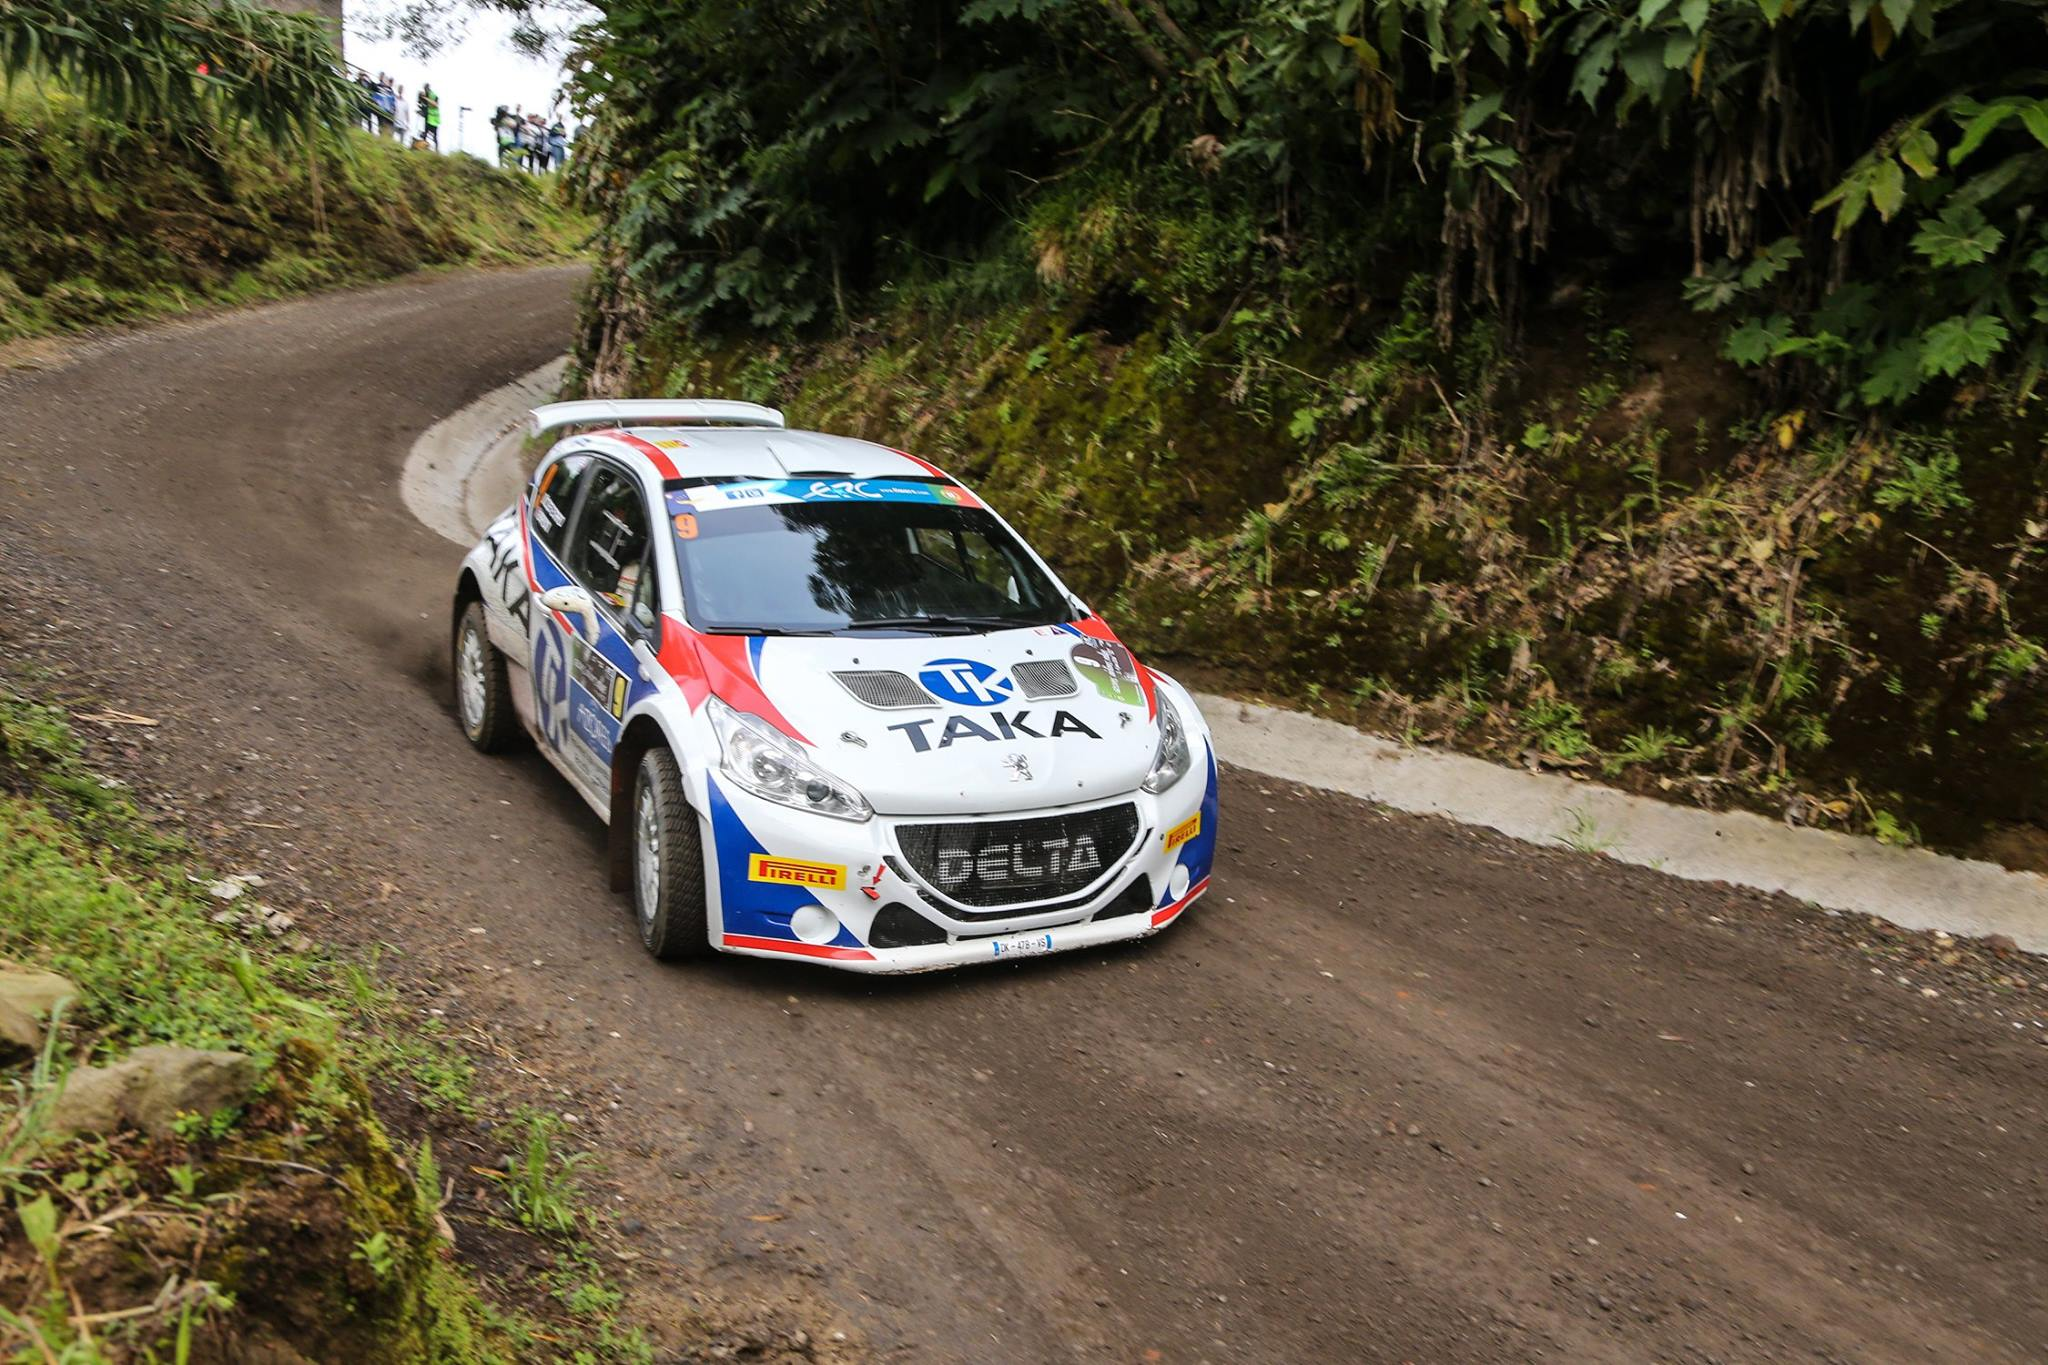 fia erc ford dominates azores rally with full podium in portugal gtspirit. Black Bedroom Furniture Sets. Home Design Ideas